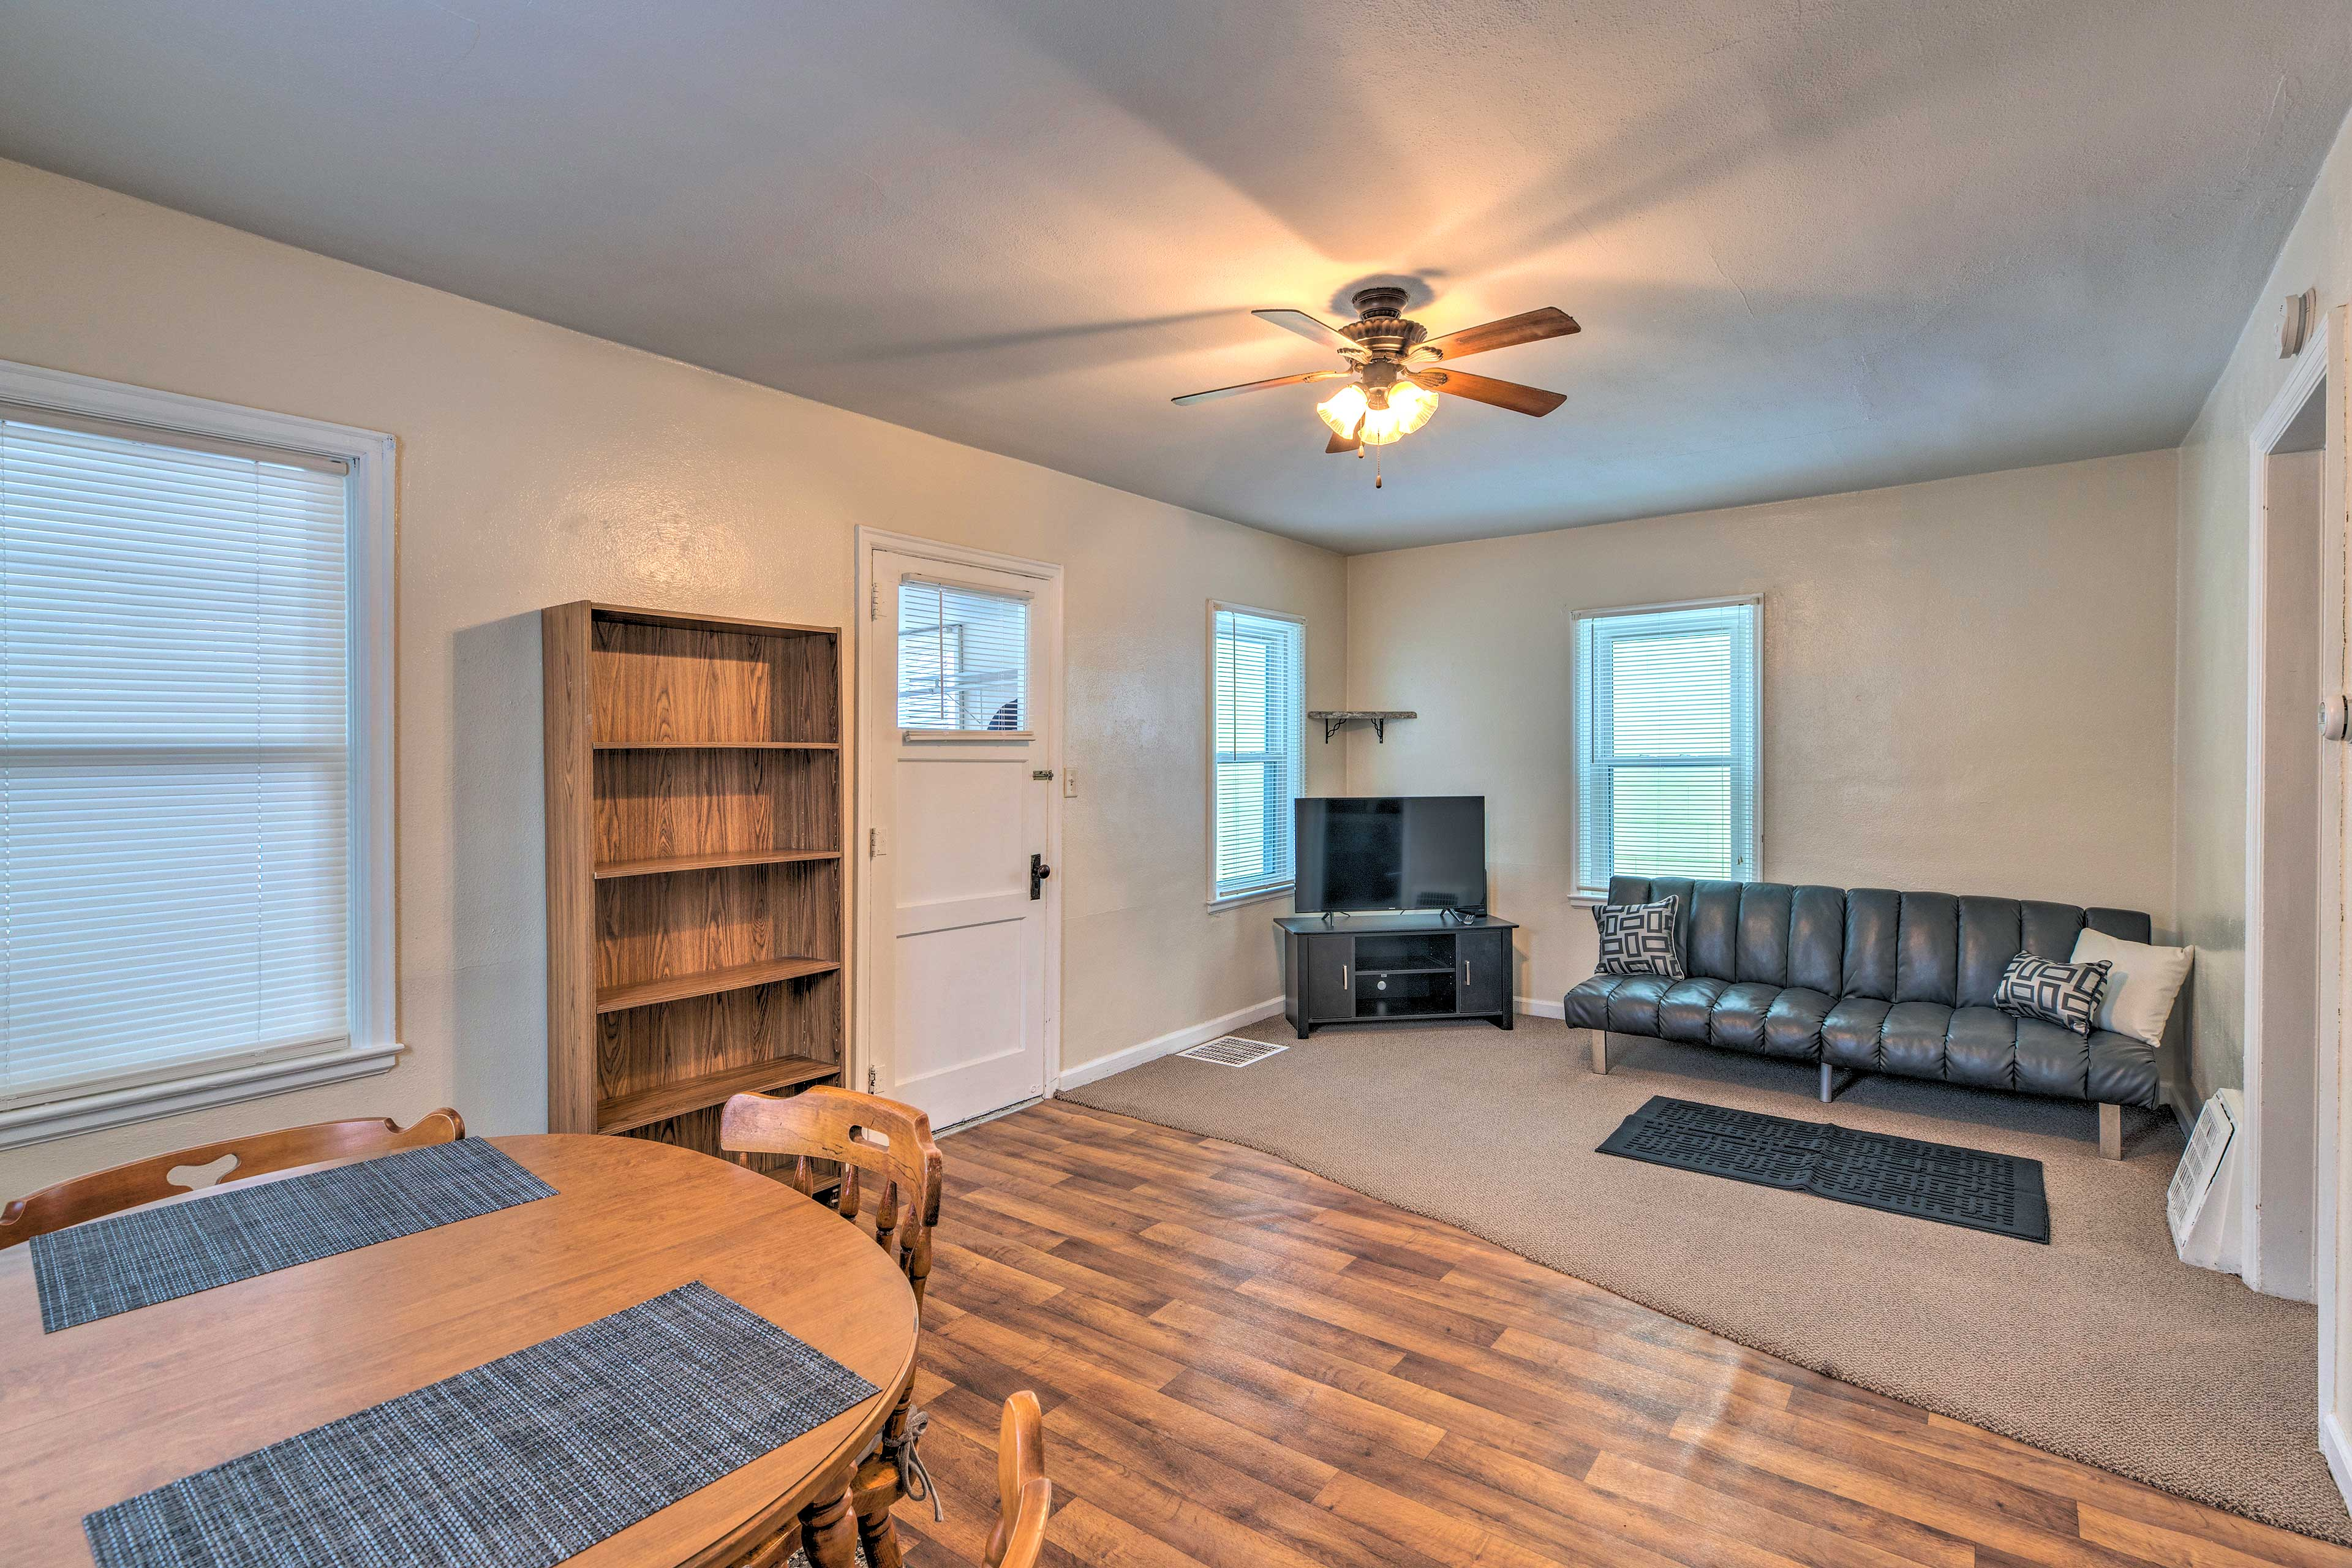 Cozy Pet Friendly Sioux Falls Home W Yard Houses For Rent In Sioux Falls South Dakota United States